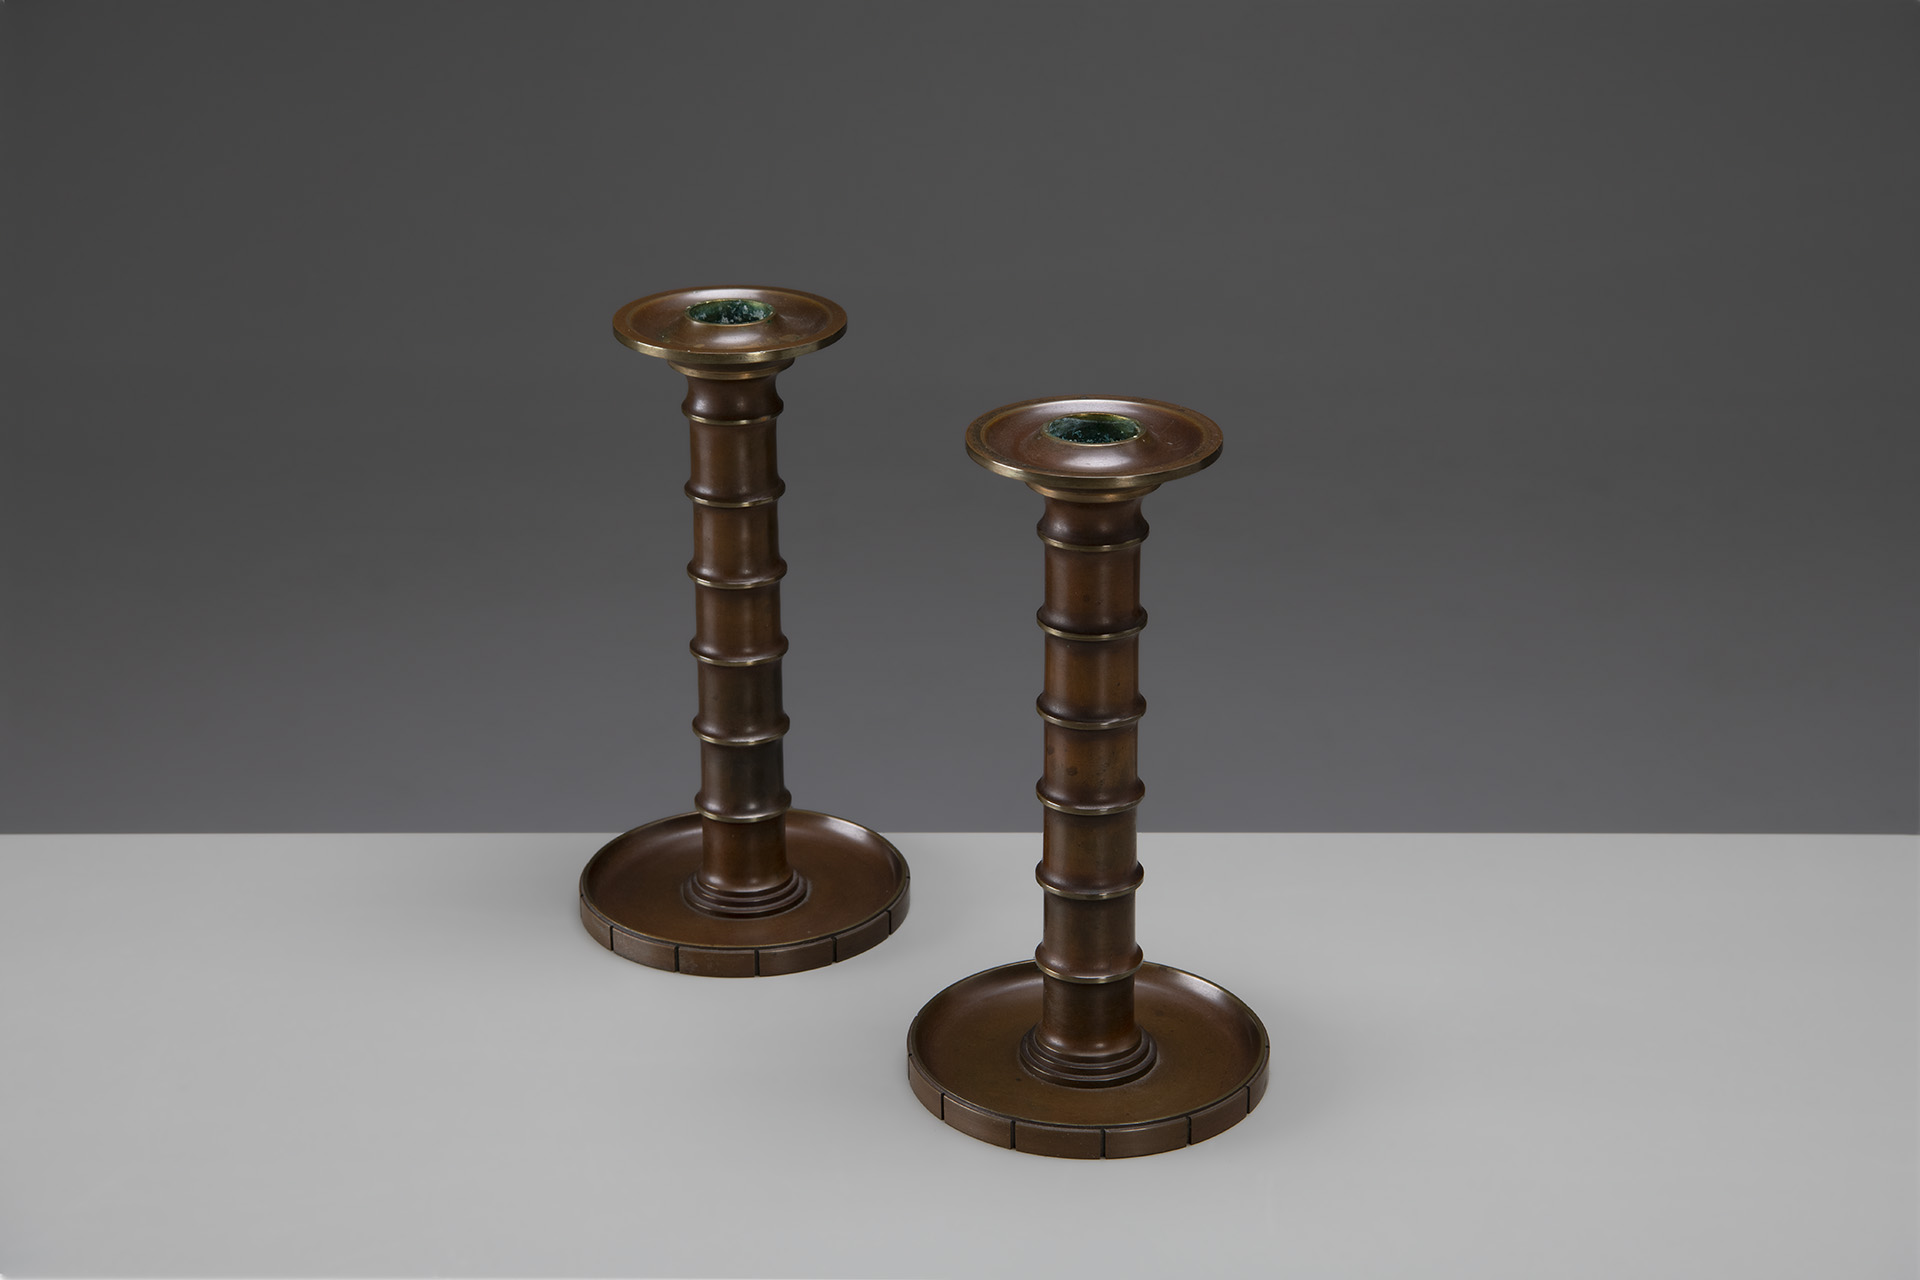 Pair of Candlesticks, Model no. 301